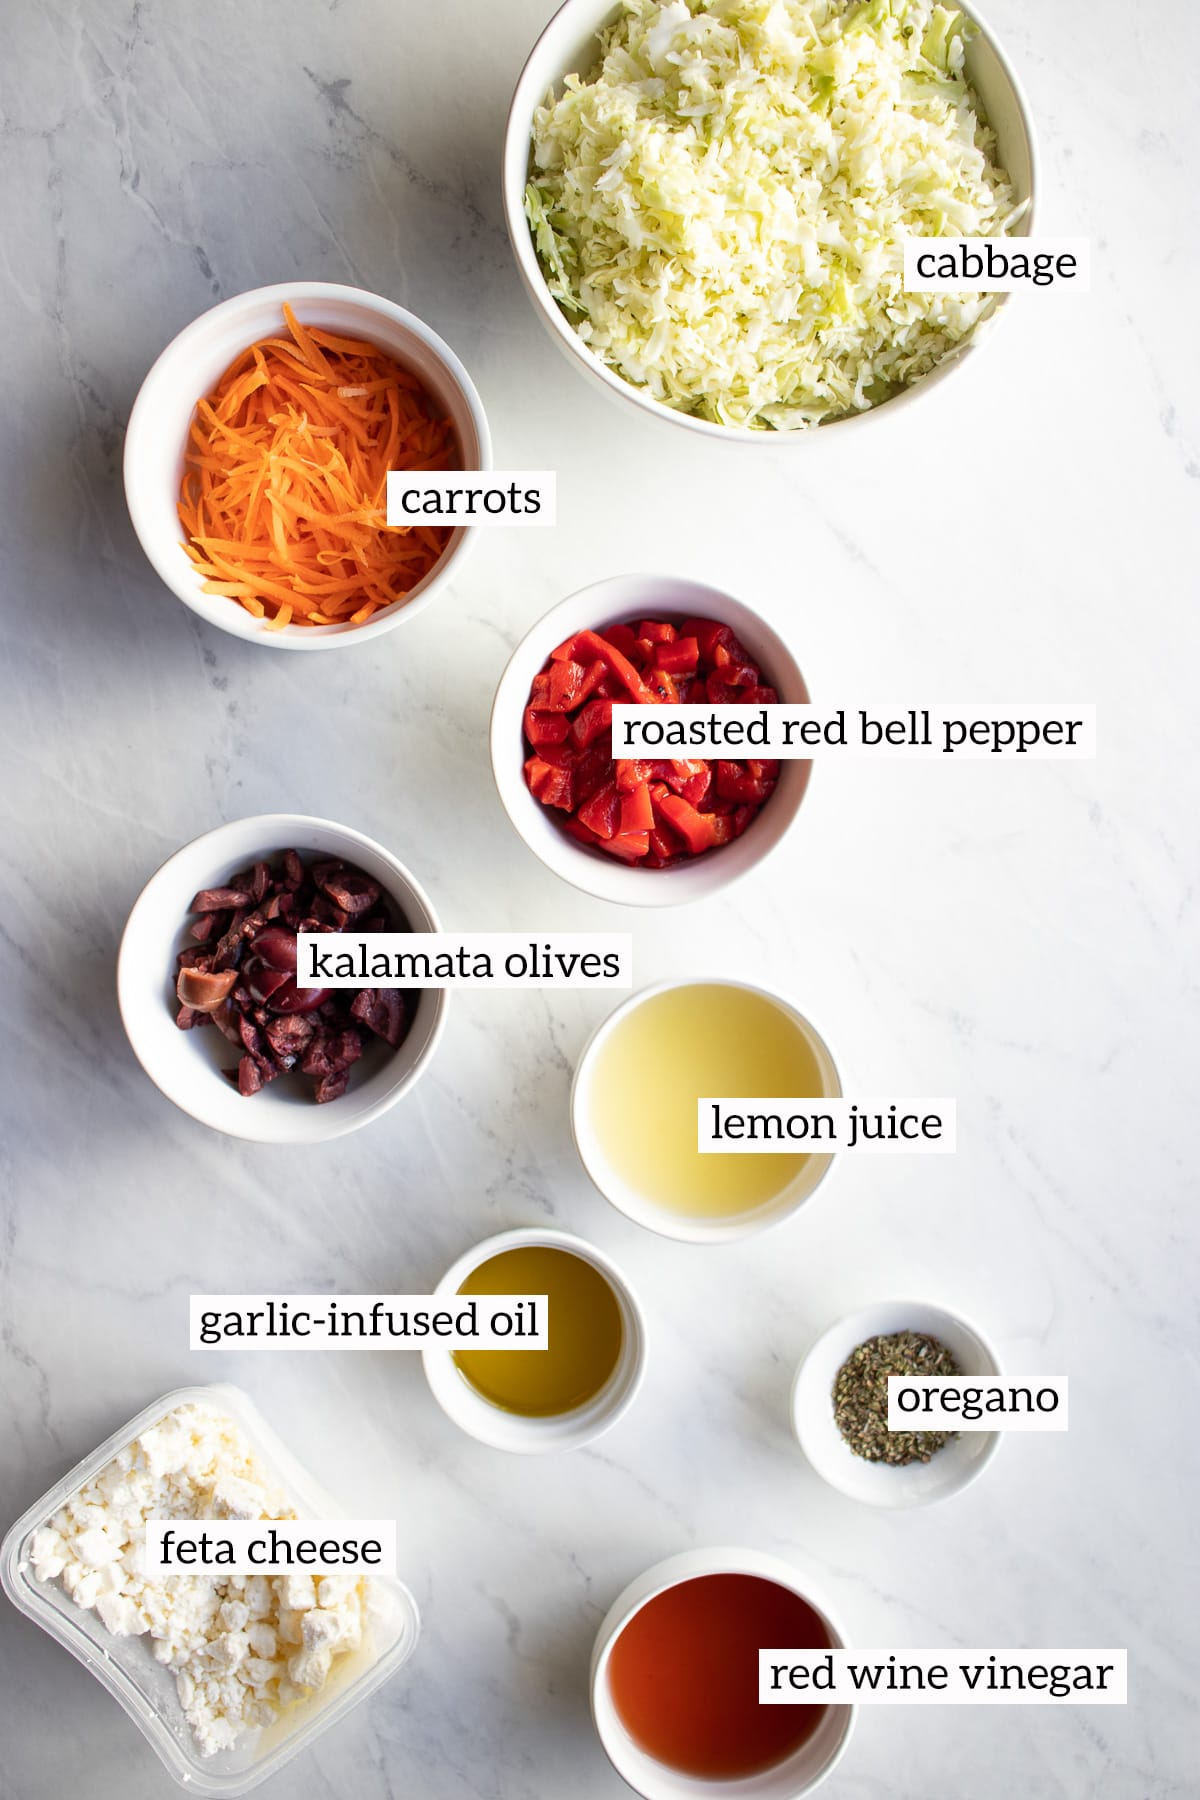 Ingredients needed for this coleslaw recipe have been measured out and placed in small white bowls.